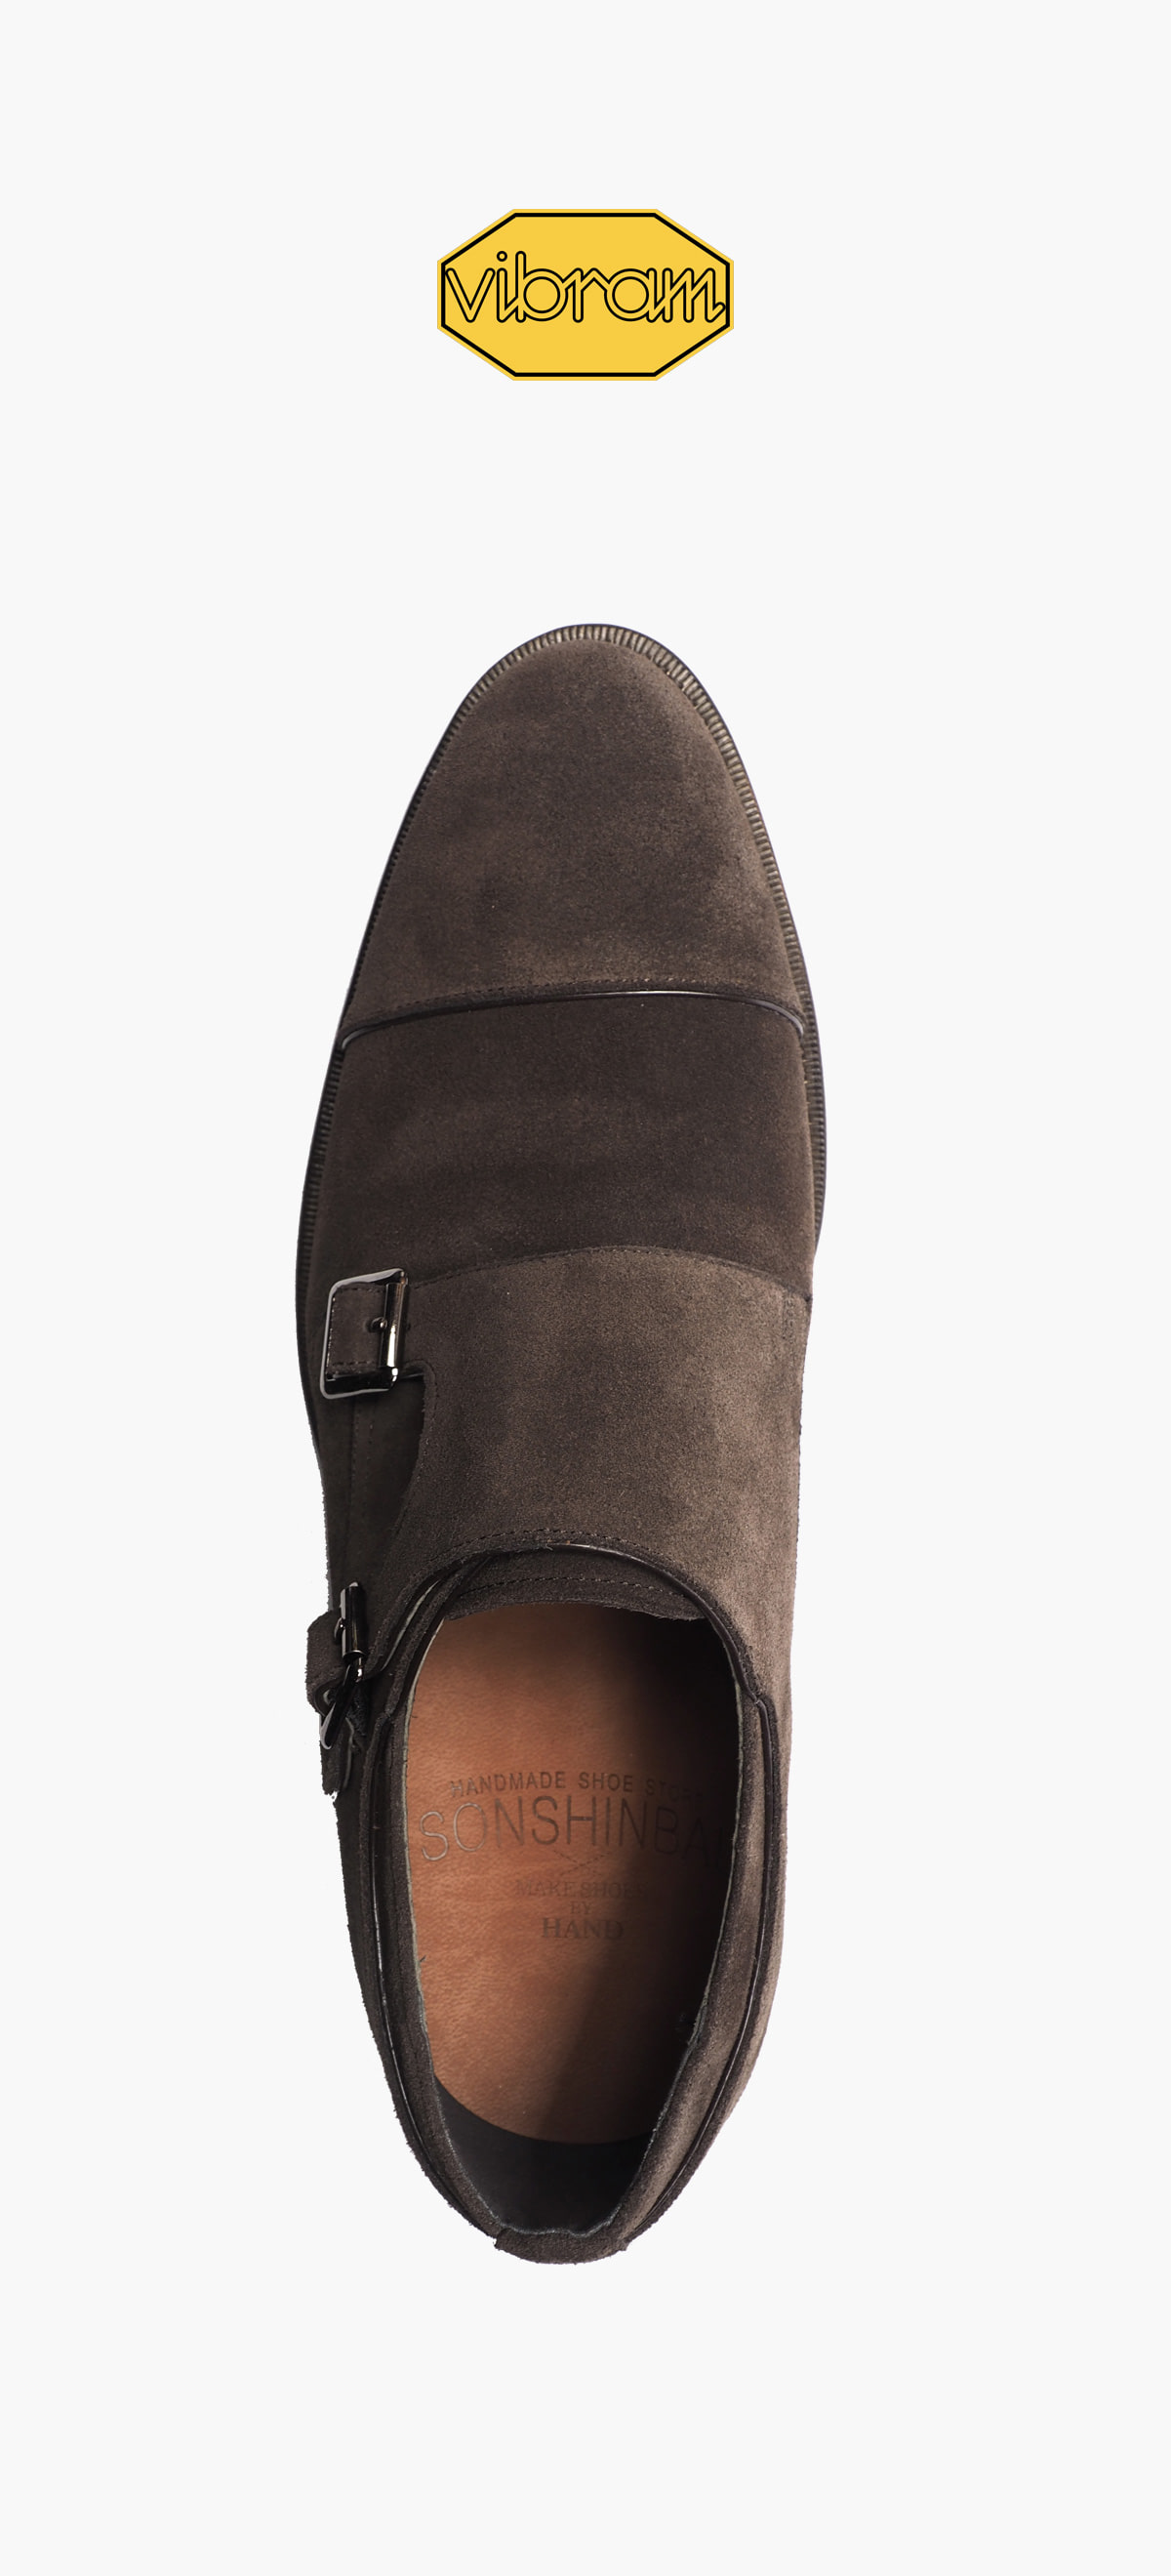 Monk Strap 2035-06 Deep Brown Suede